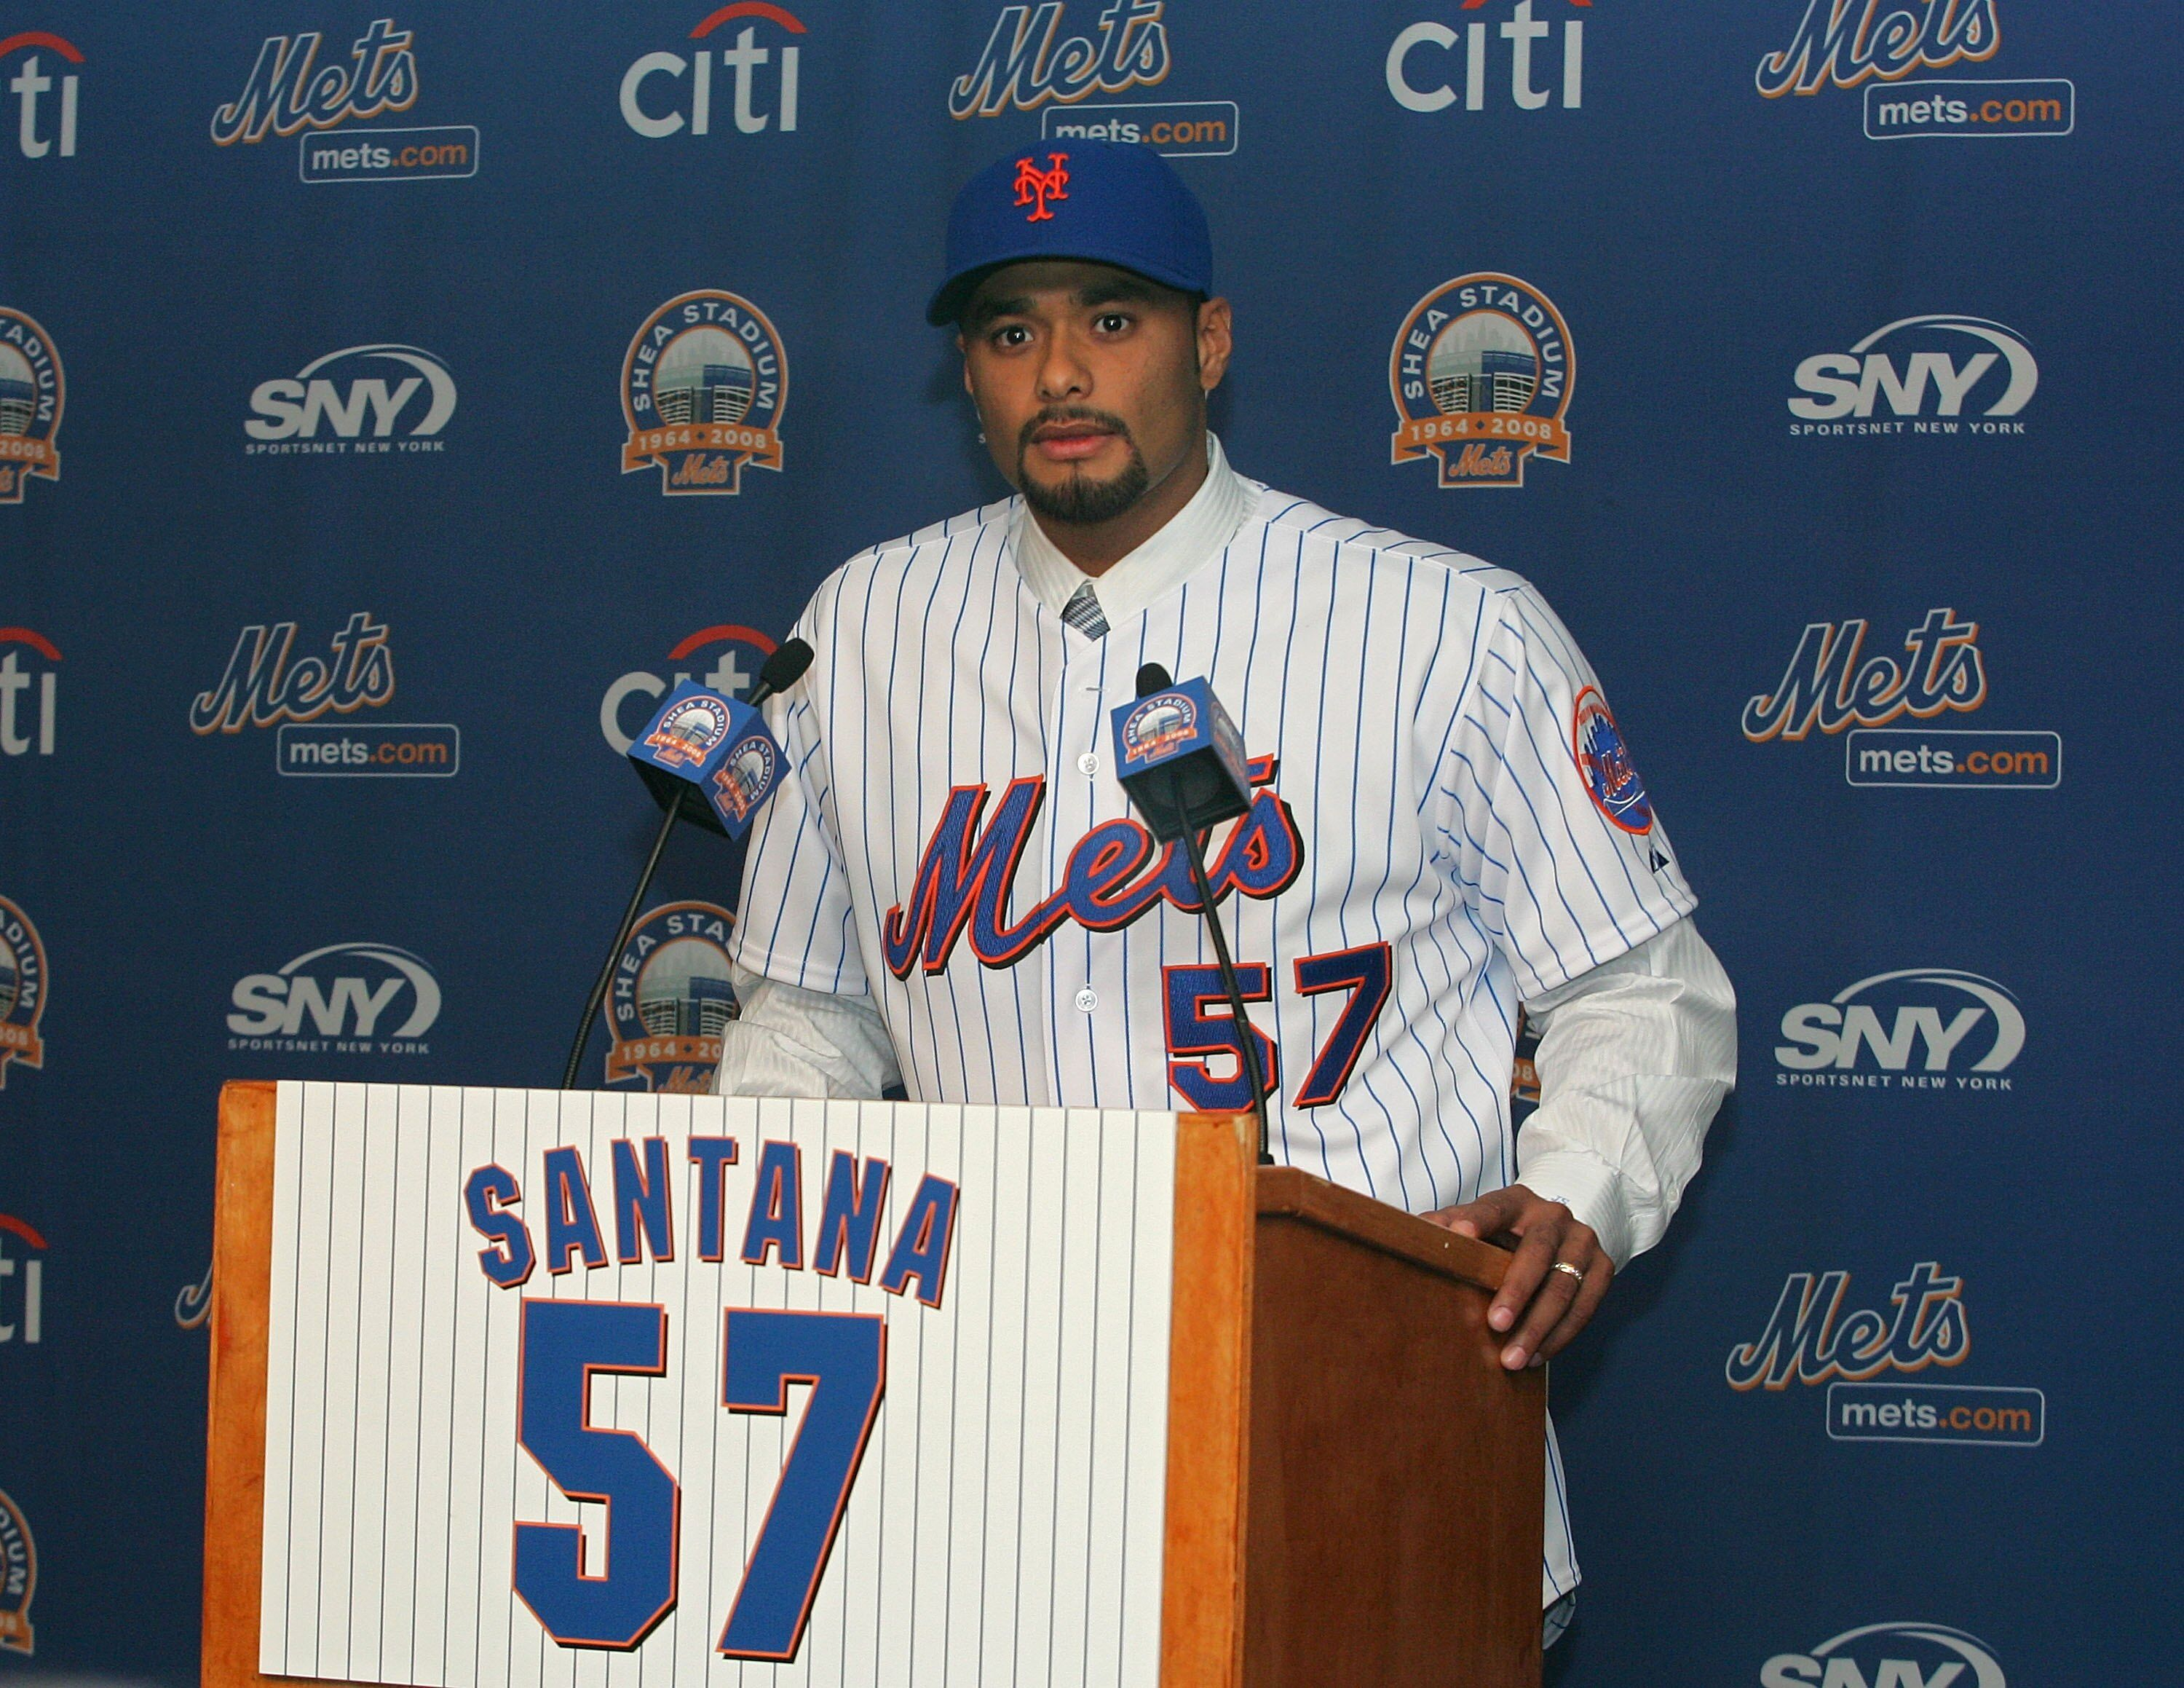 79644865-new-york-mets-introduce-johan-santana.jpg